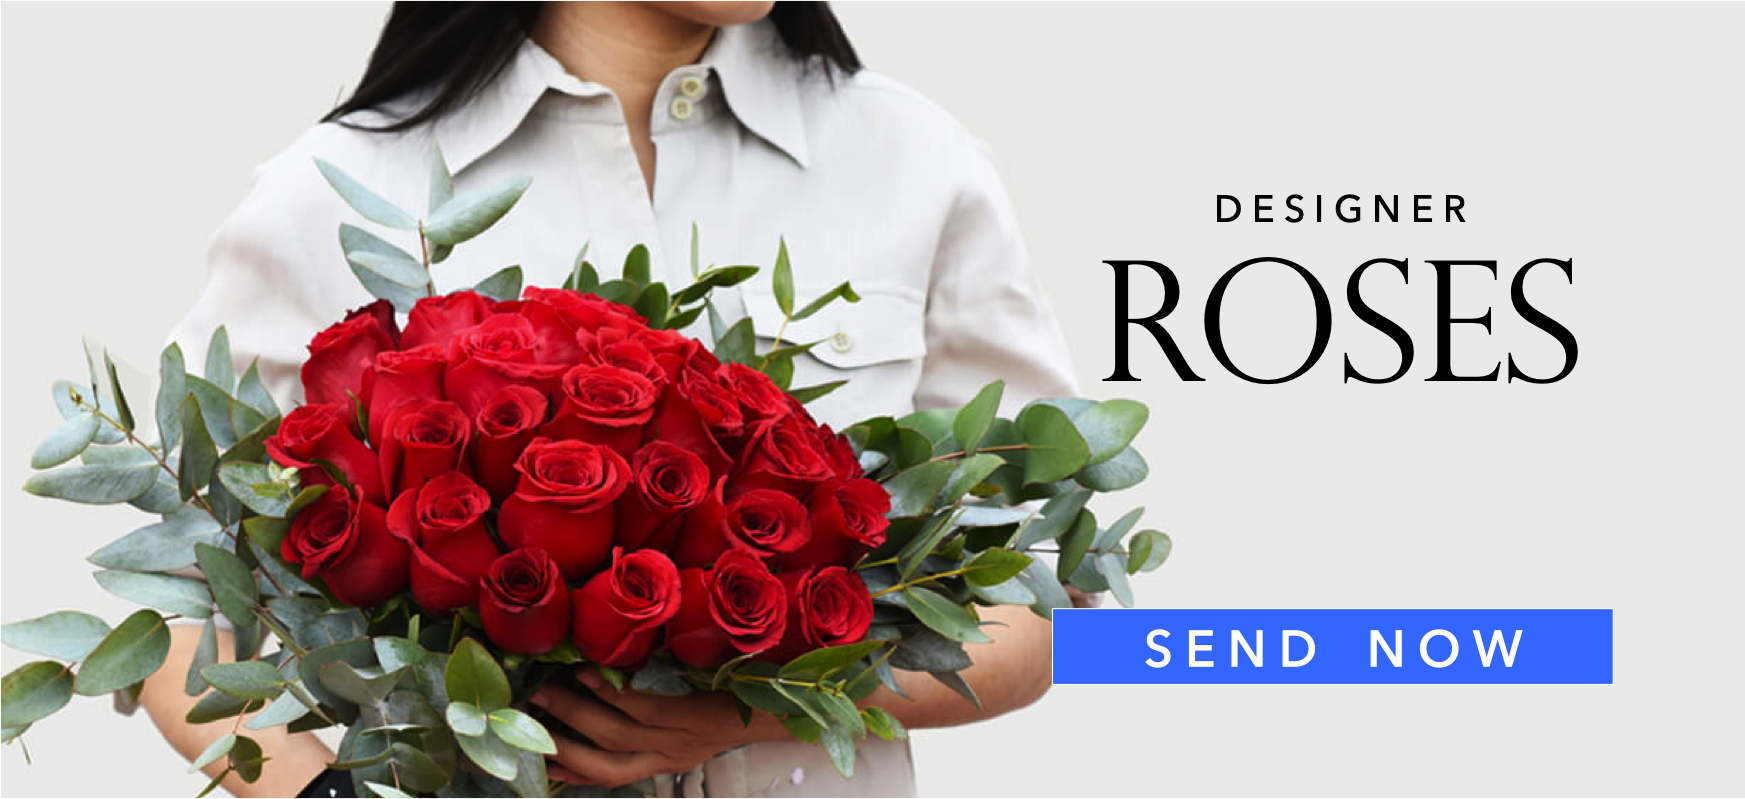 roses-79912-iconic-gifts-angies-floral-designs-el-paso-texas-79912-el-paso-flowershop-angies-flower-florist-79912-best-florist.png